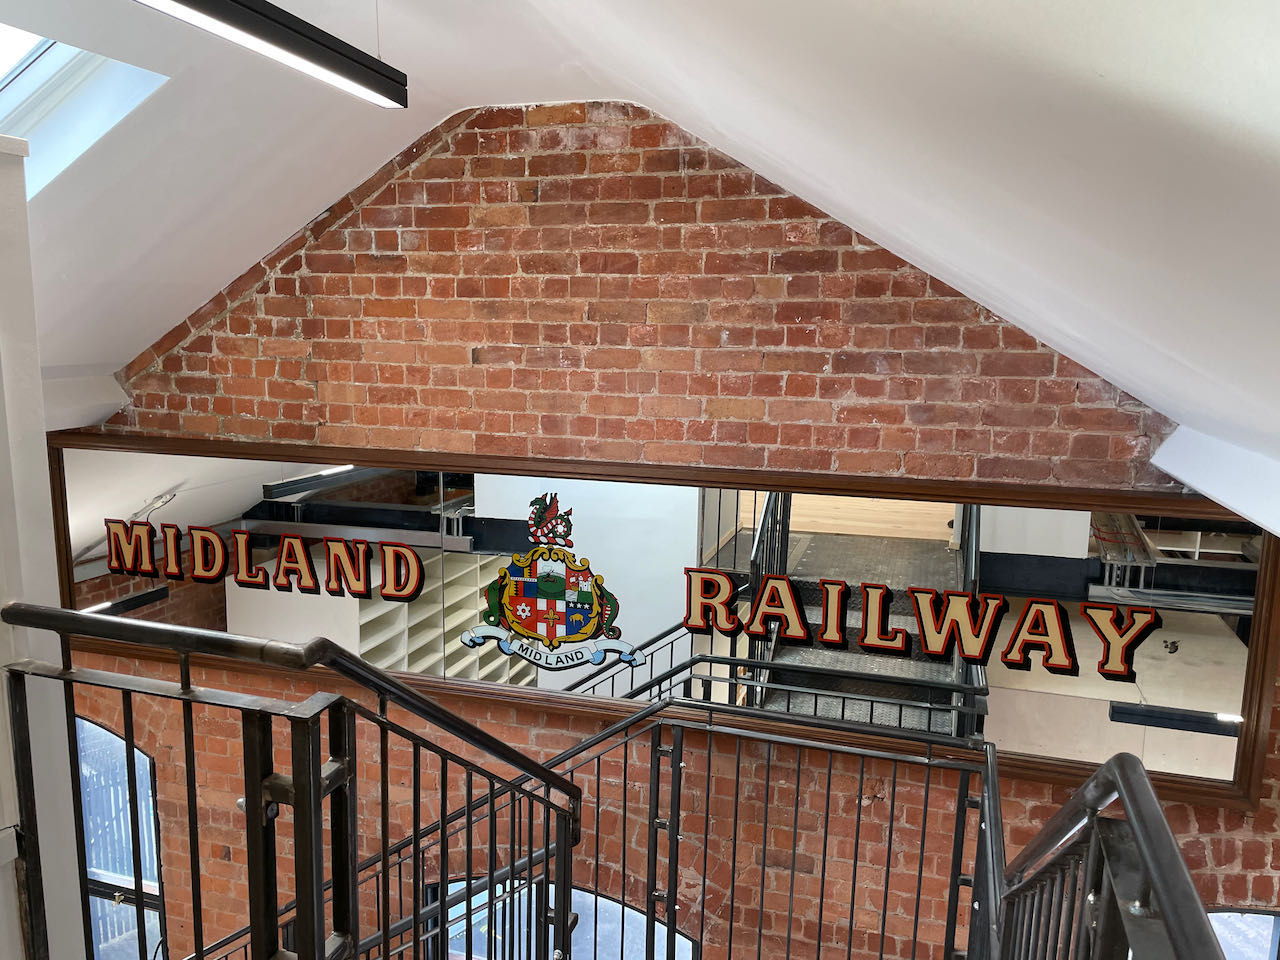 The Midland Railway Bradford bar mirror newly installed on the wall of the stairway separating the Midland Railway Study Centre reading room from the store below